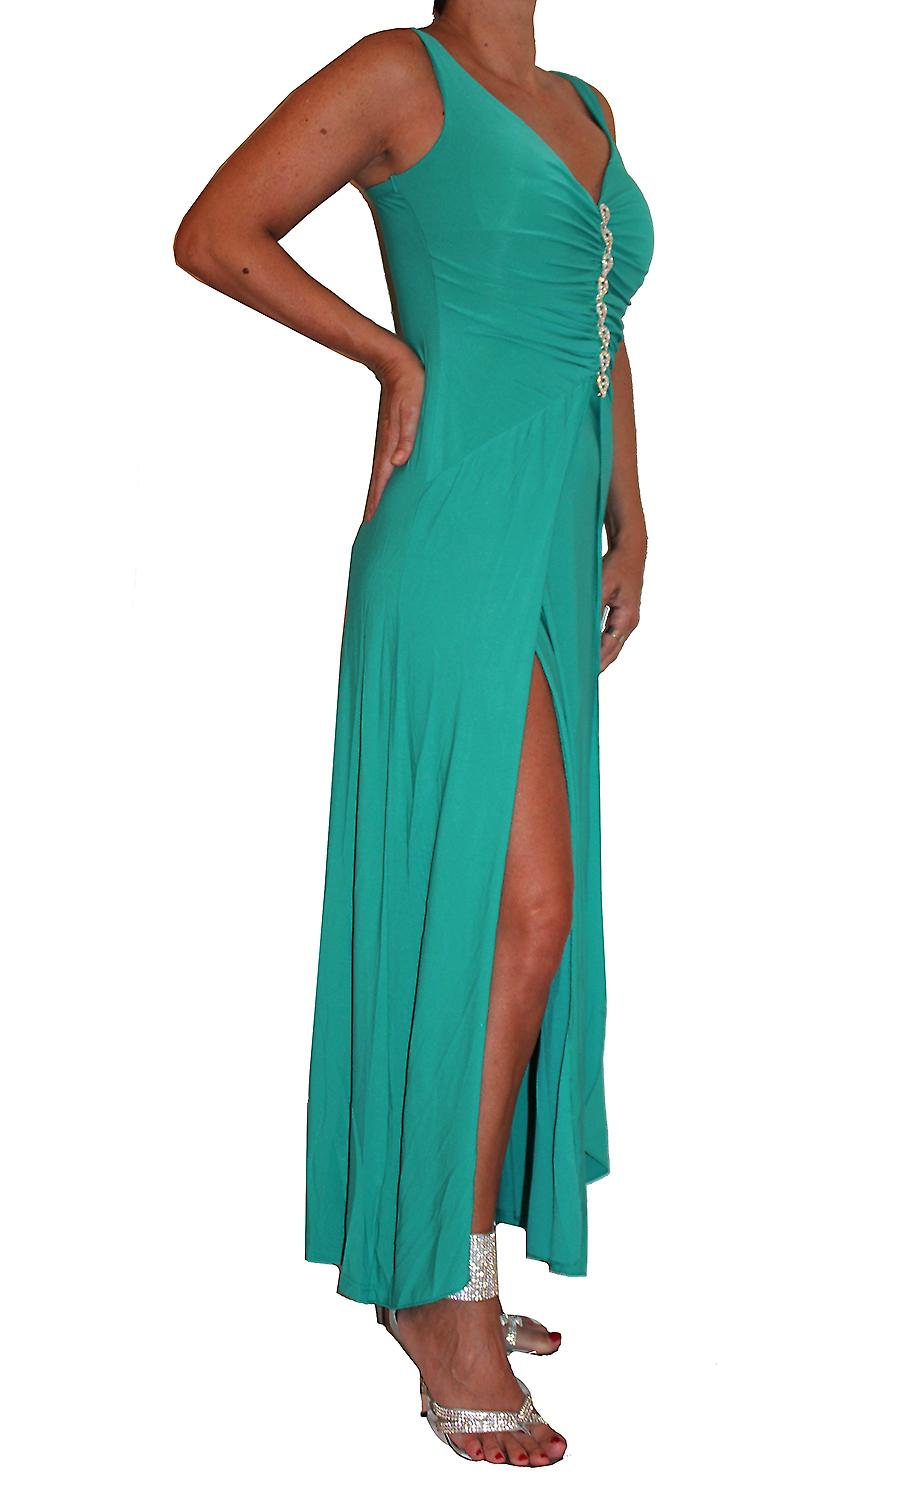 Waooh - slit evening dress and rhinestone Wilmine